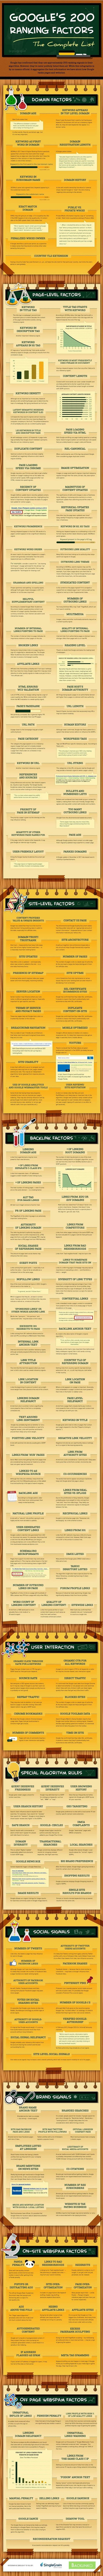 Search Ranking Factors 200 Google infographic | SEO, SMM | Scoop.it